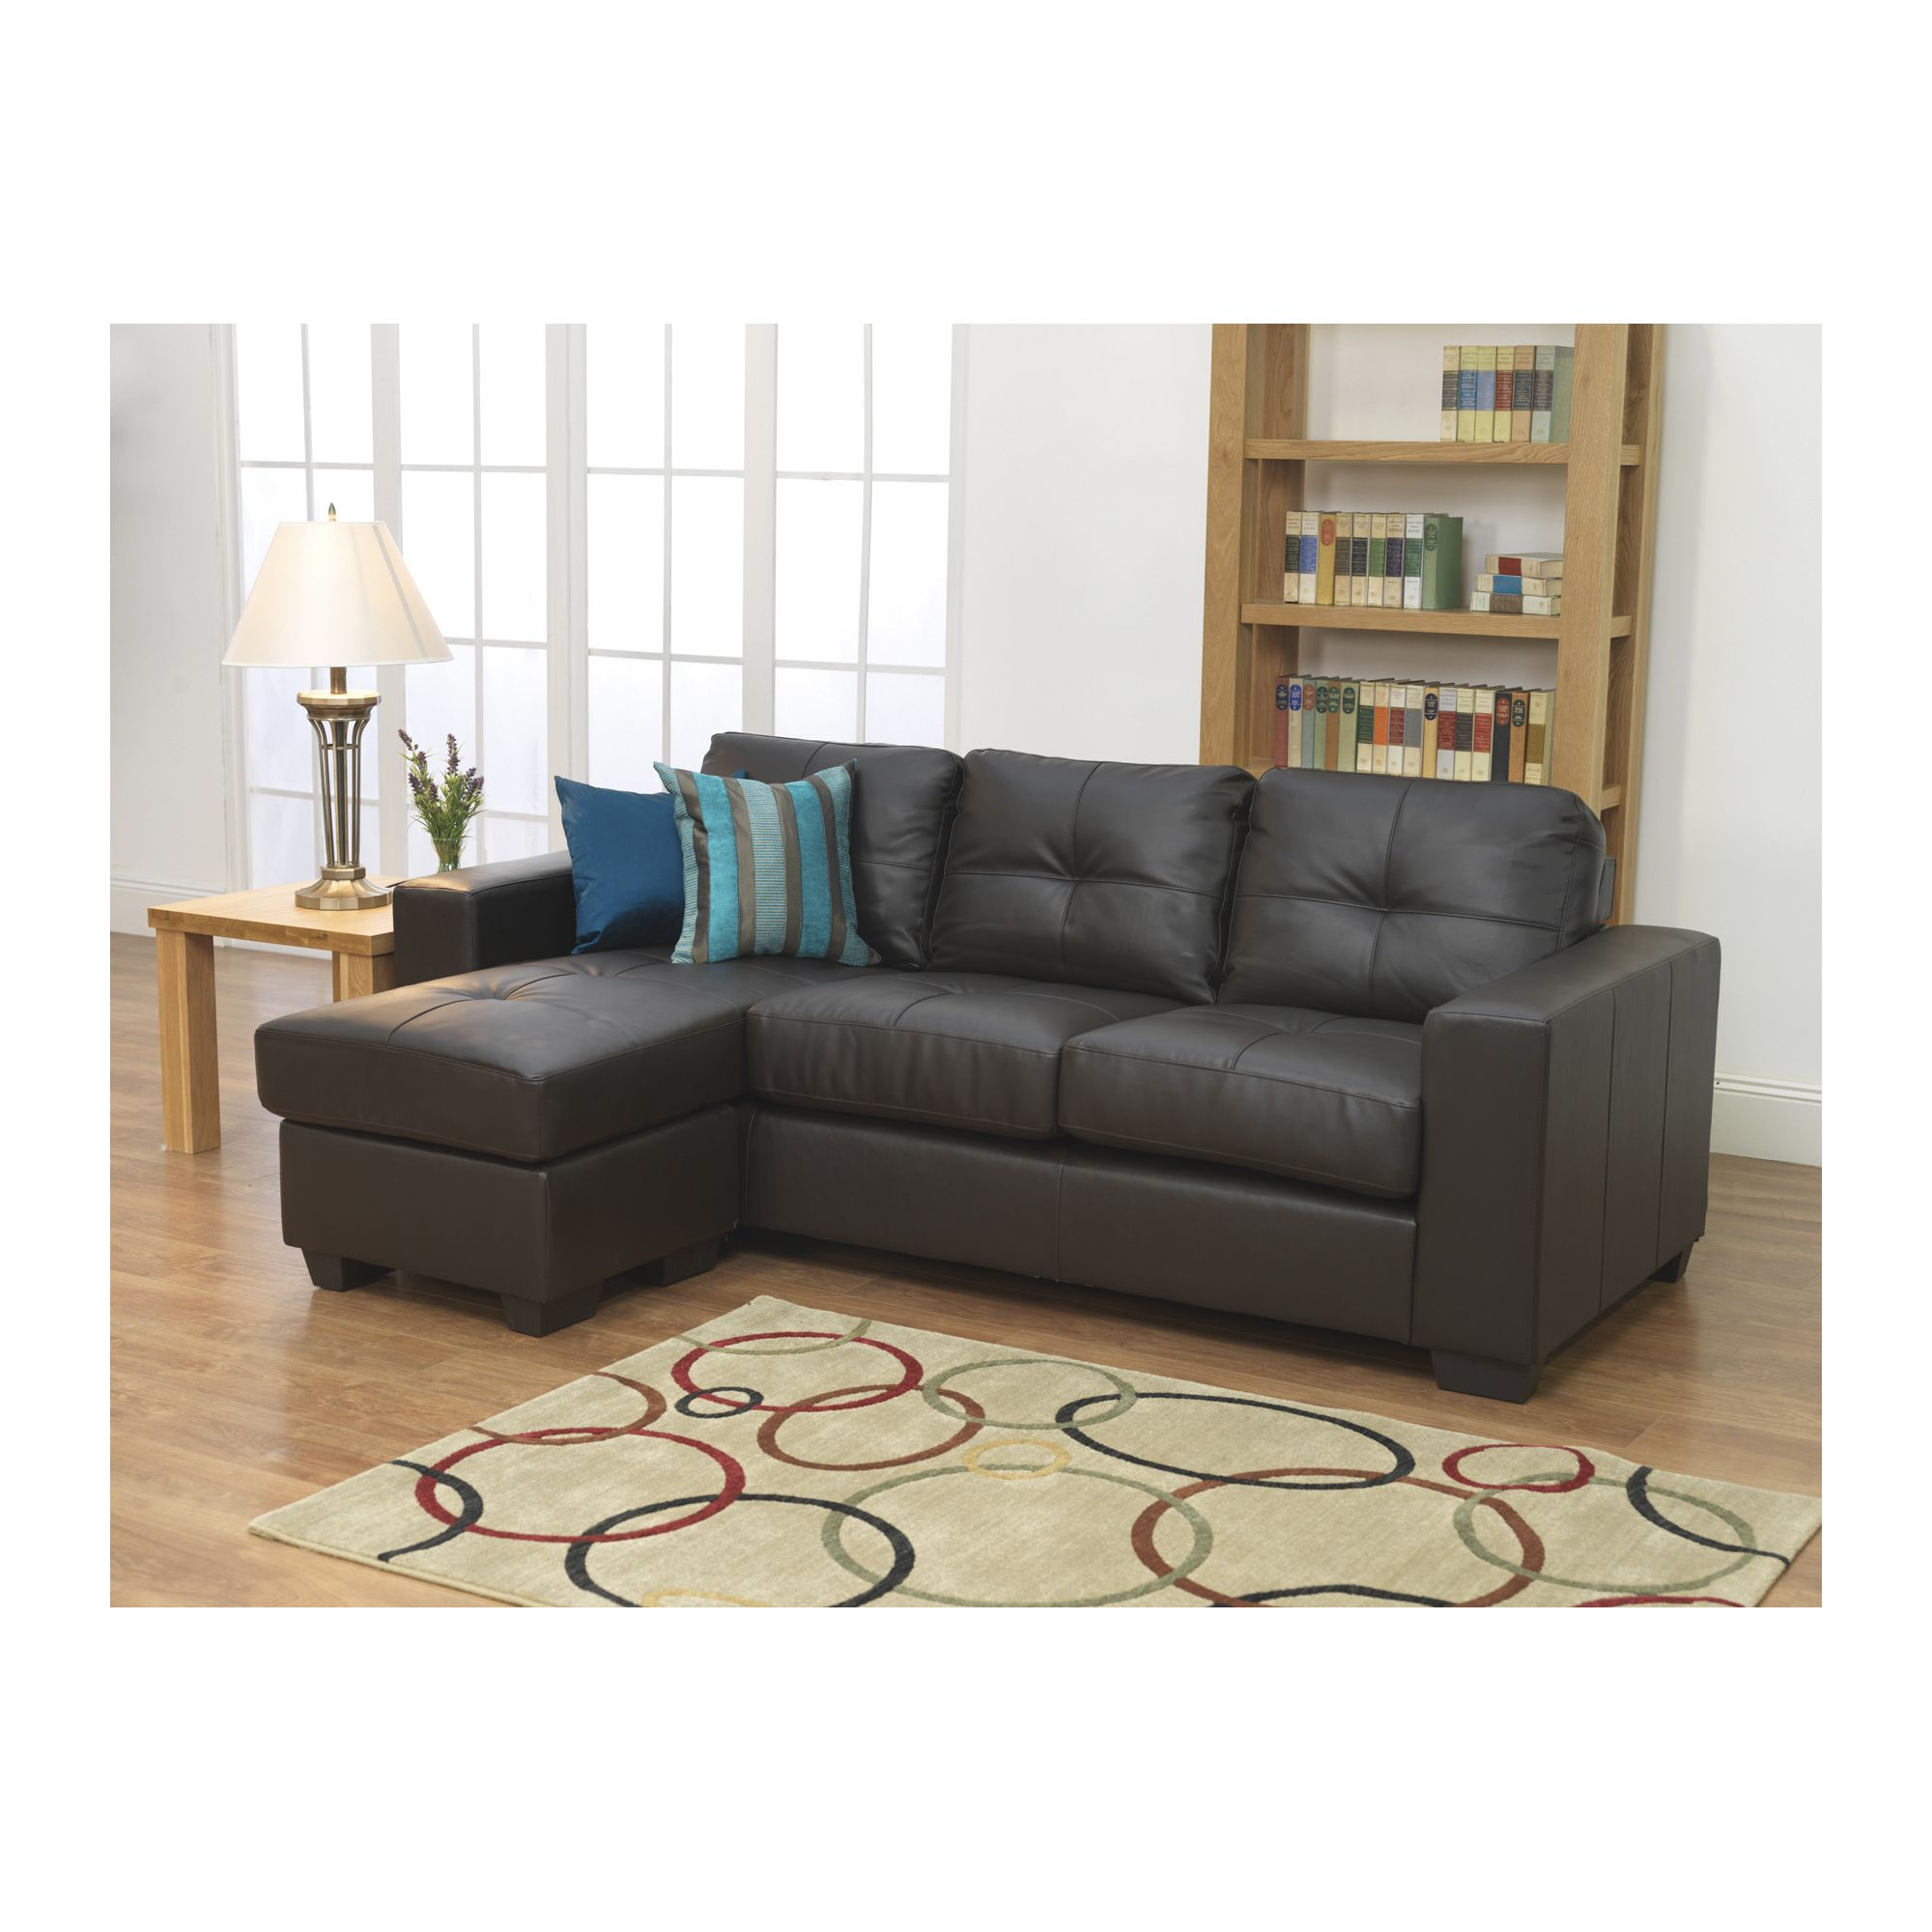 Furniture Link Gemona L Sofa in Brown at Tesco Direct